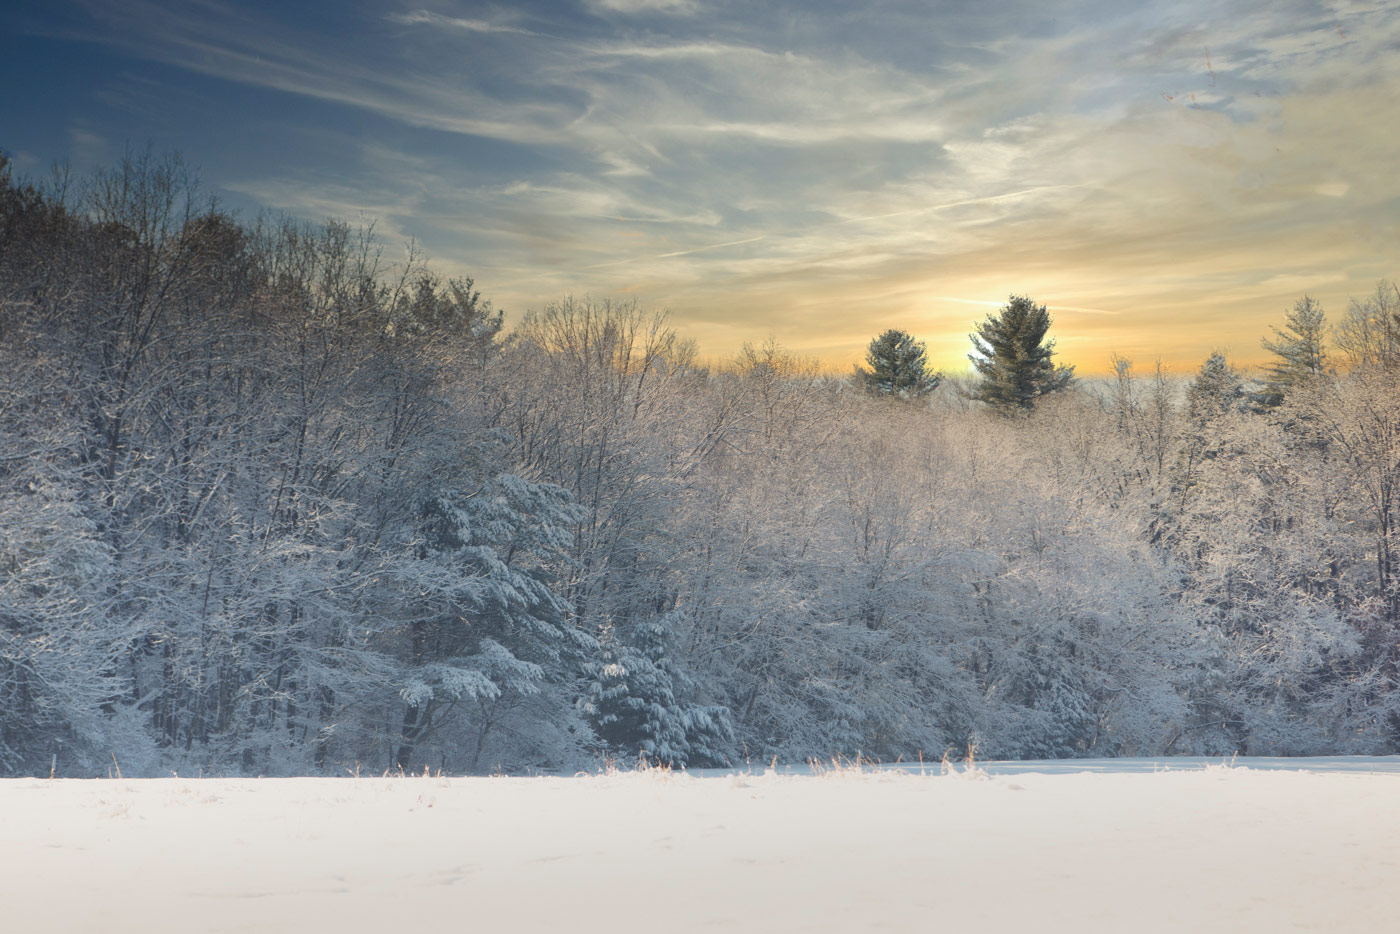 wintery sunrise over snow covered trees